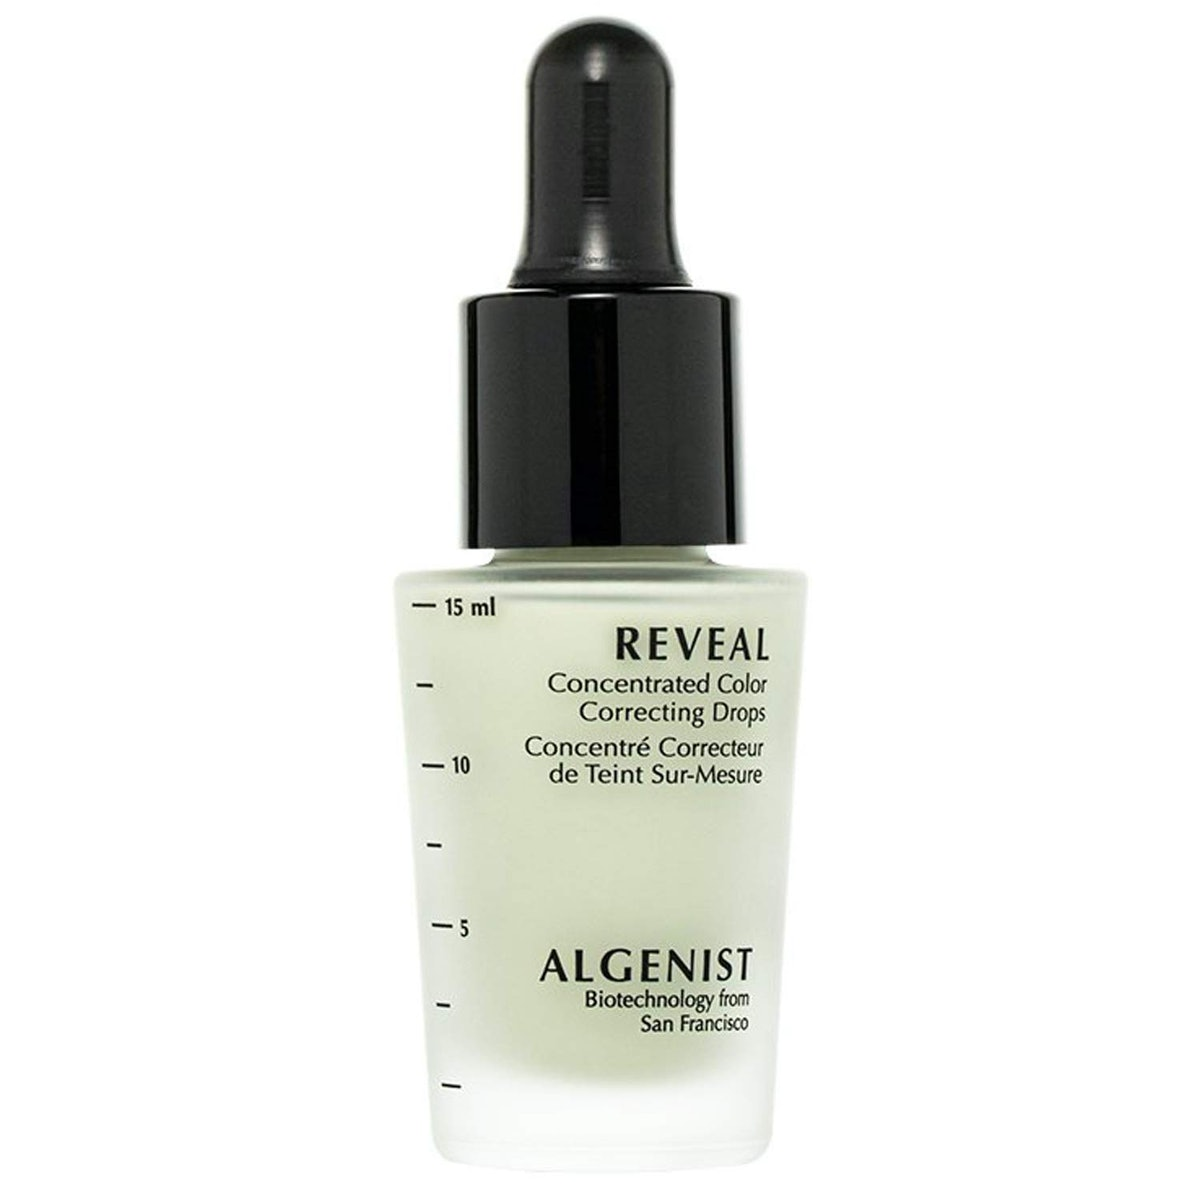 Algenist REVEAL Concentrated Color Correcting Drops